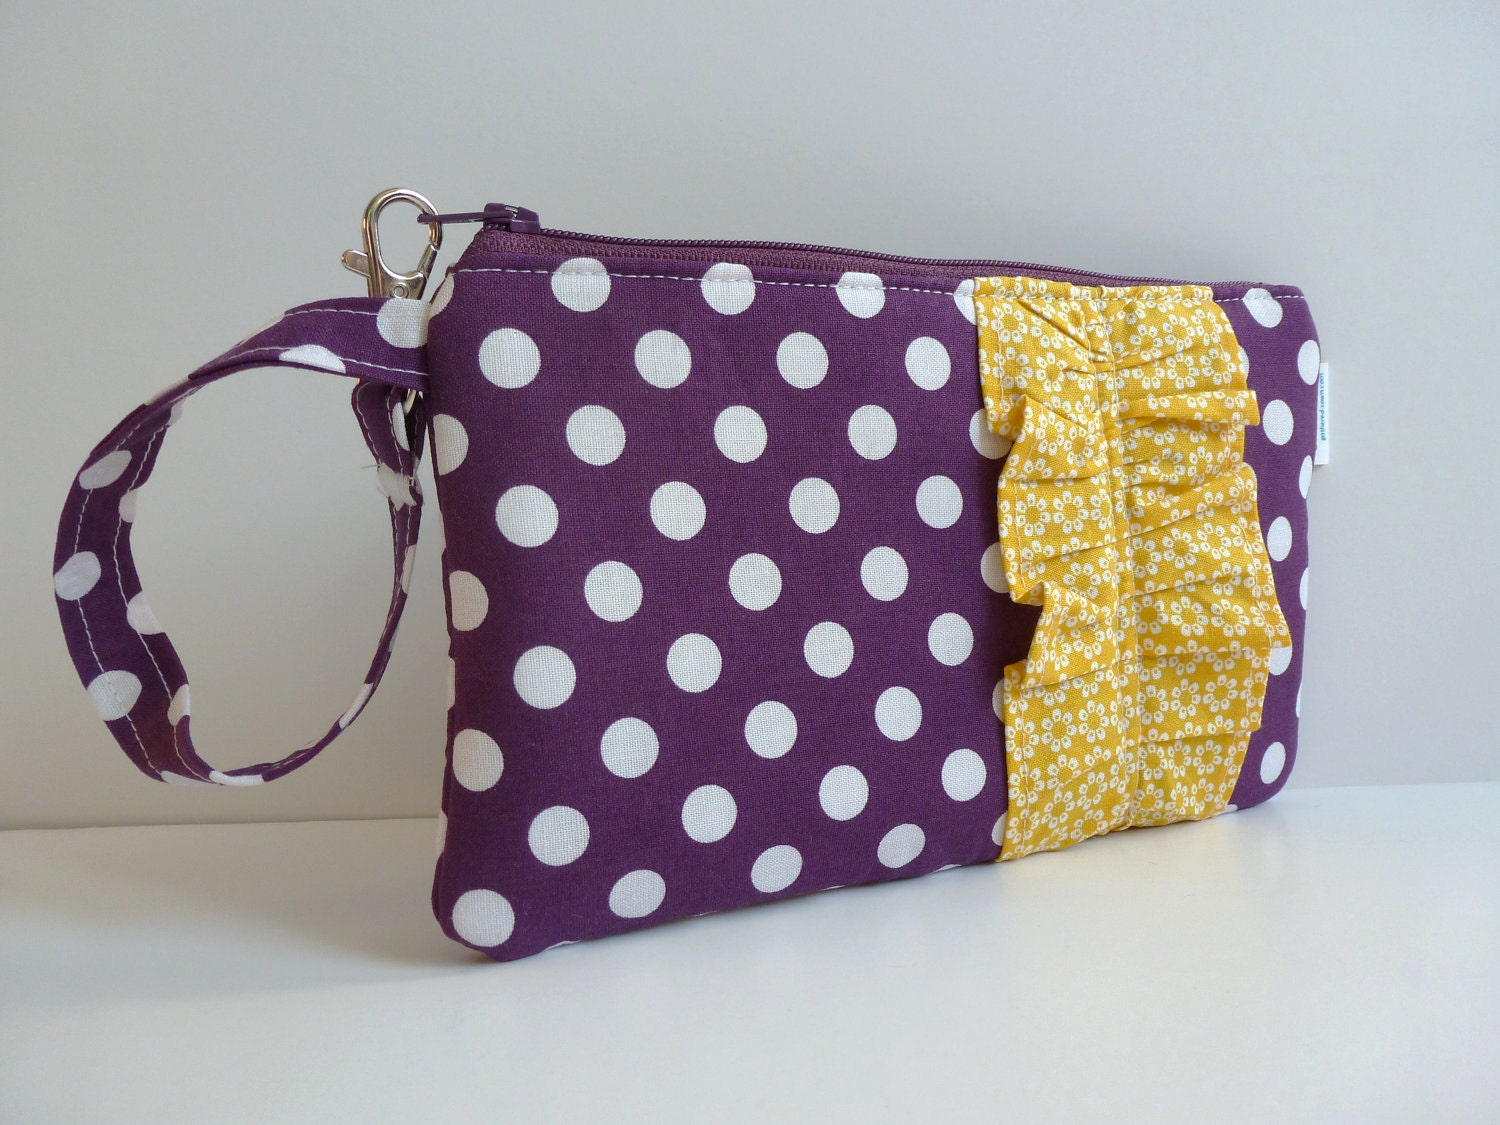 Plum Purple/White Polka Dot Wristlet with Yellow/White Floral Ruffle